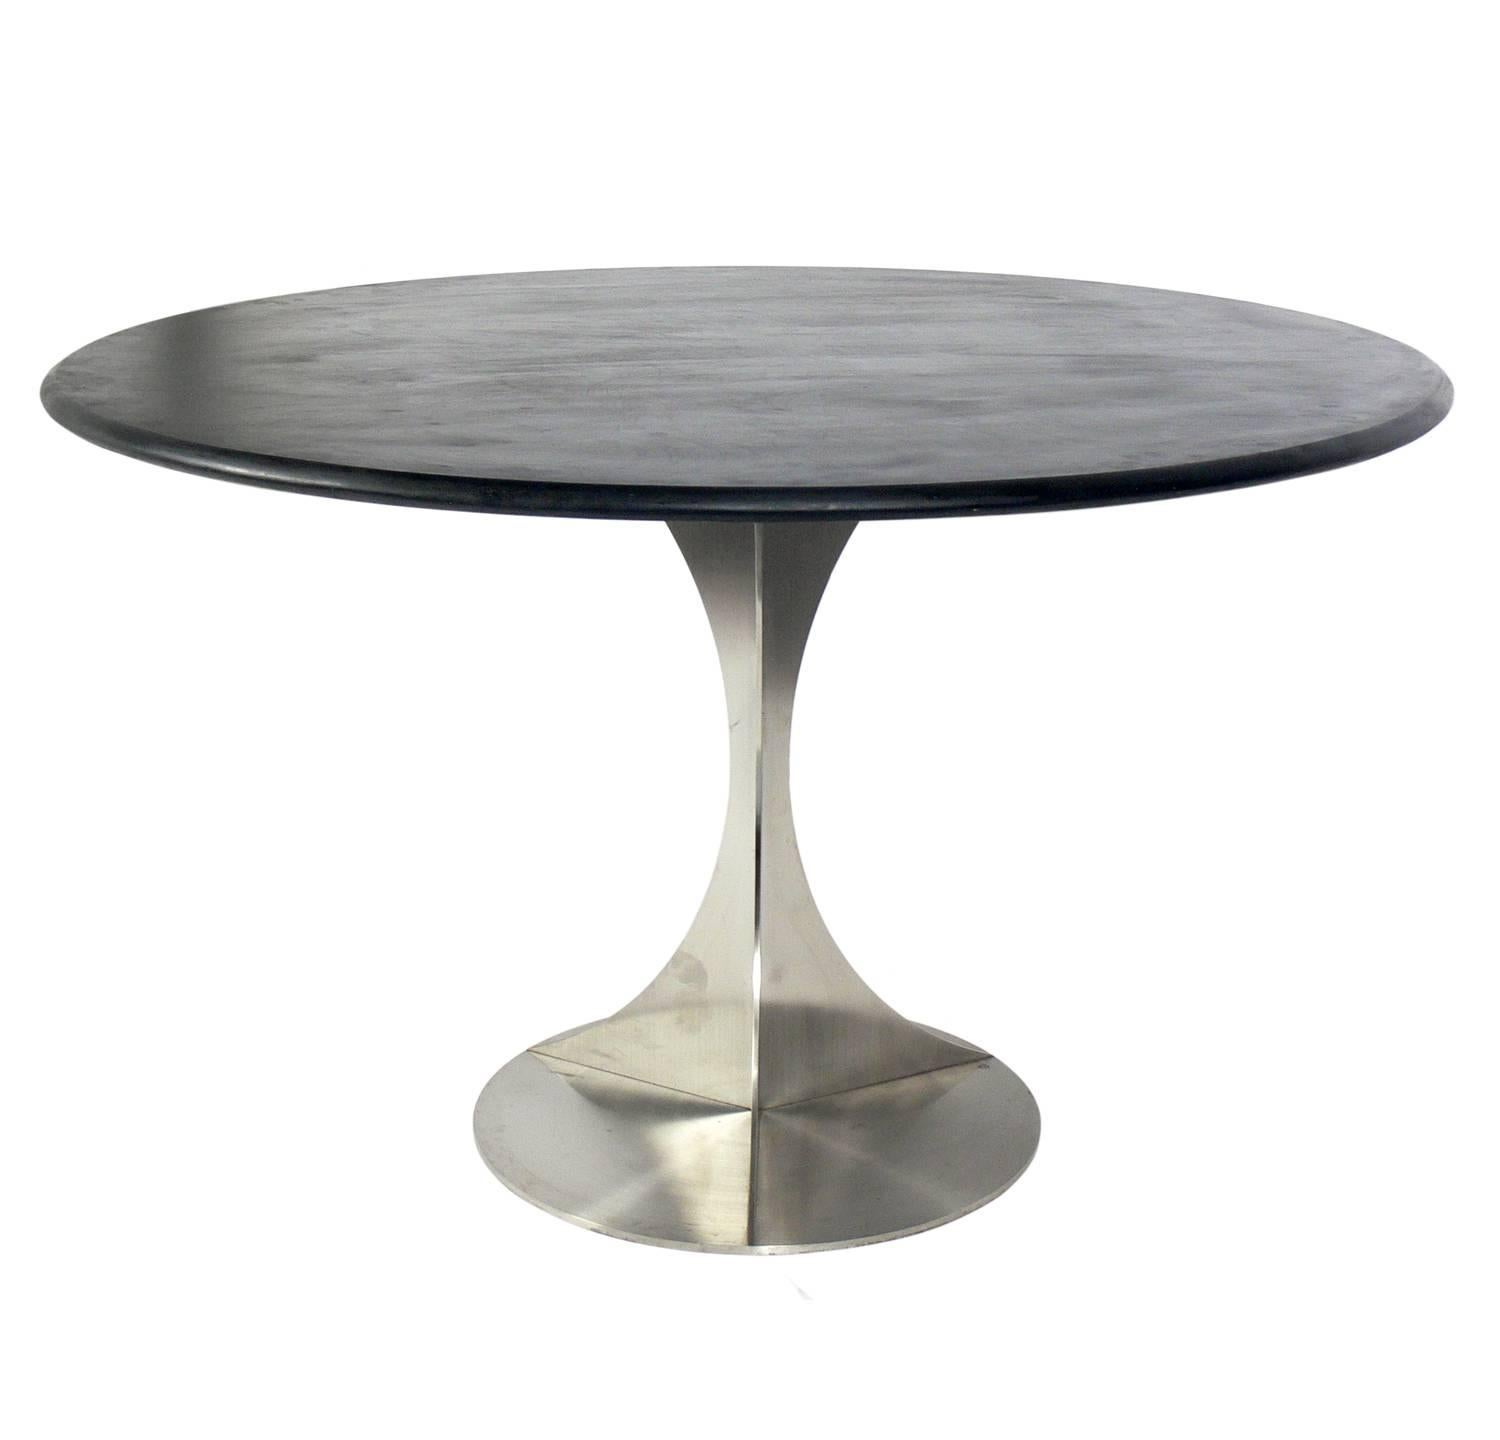 Stainless Steel And Slate Dining Table In The Manner Of Maria Pergay